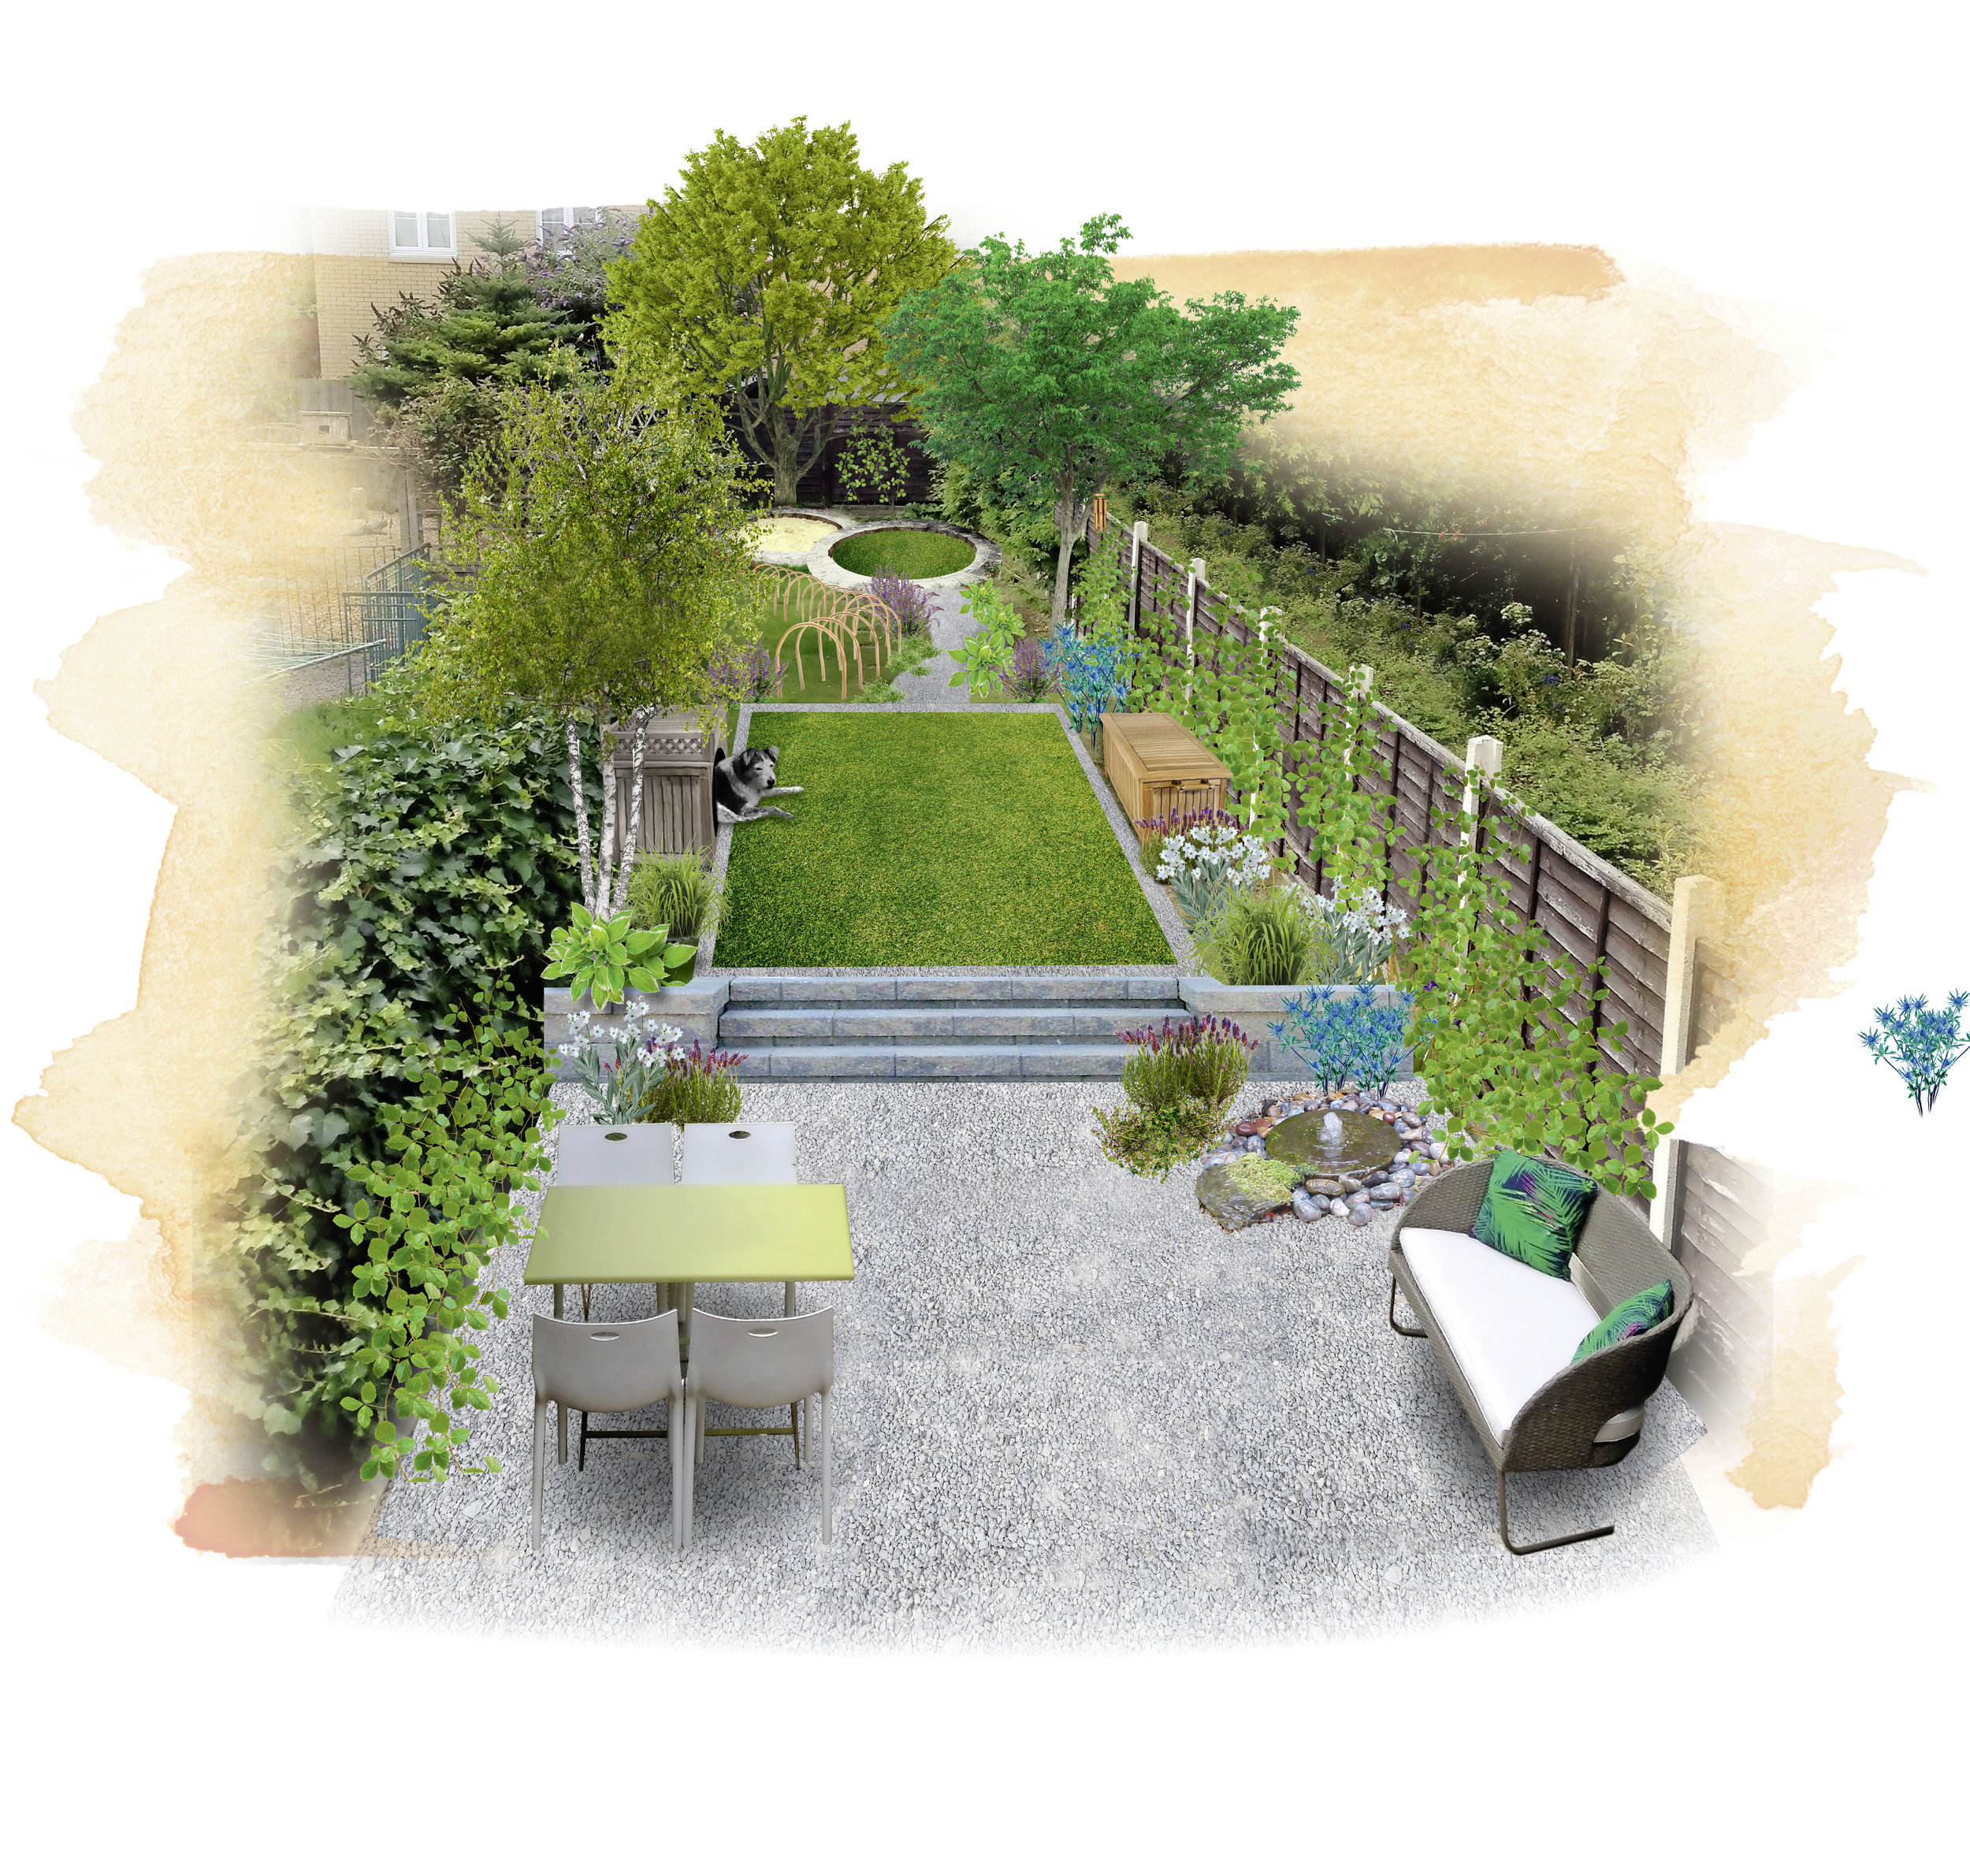 Q. Can you help me create an attractive dog-friendly garden